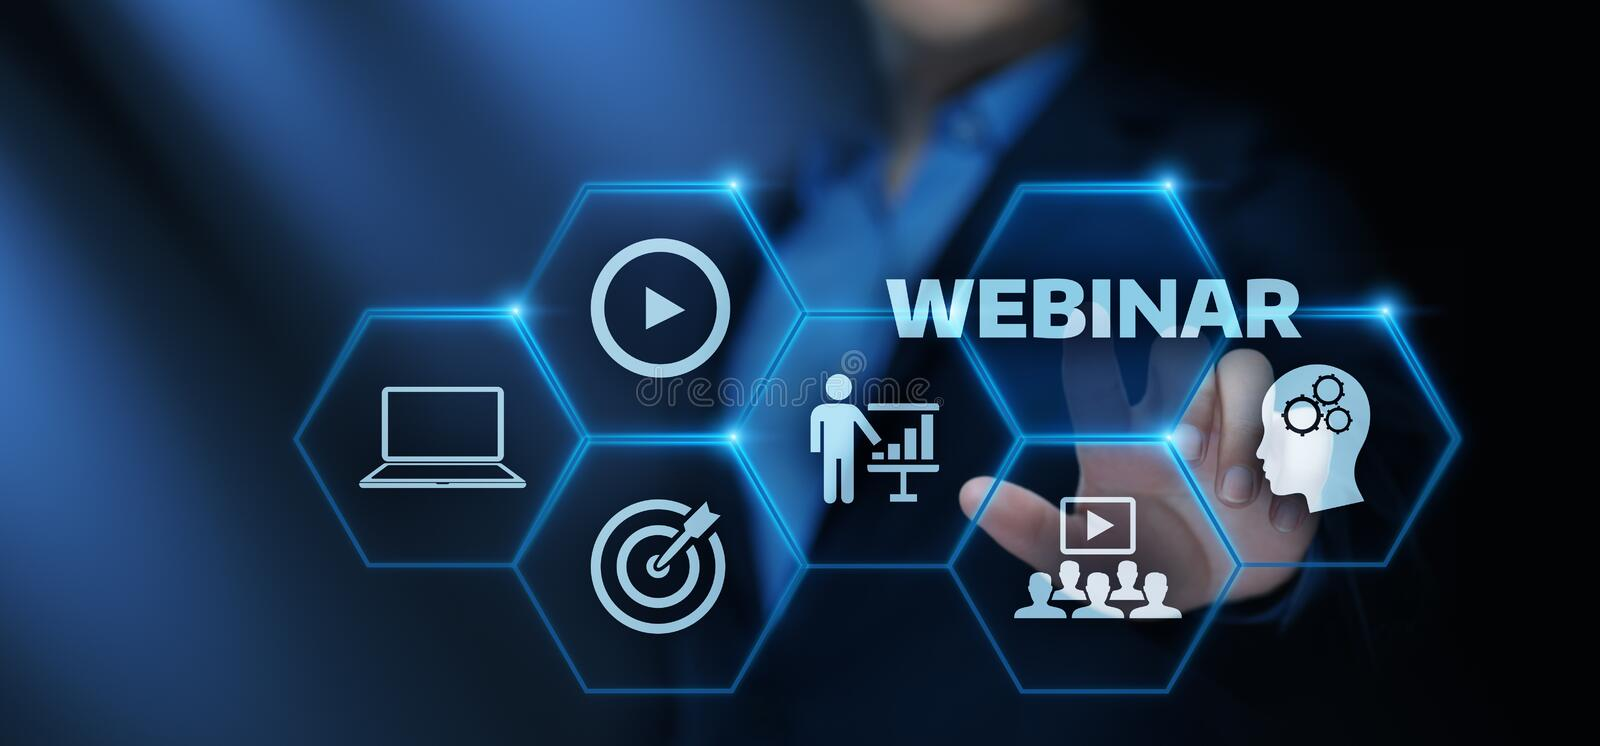 Webinar E-learning Training Business Internet Technology Concept stock photography